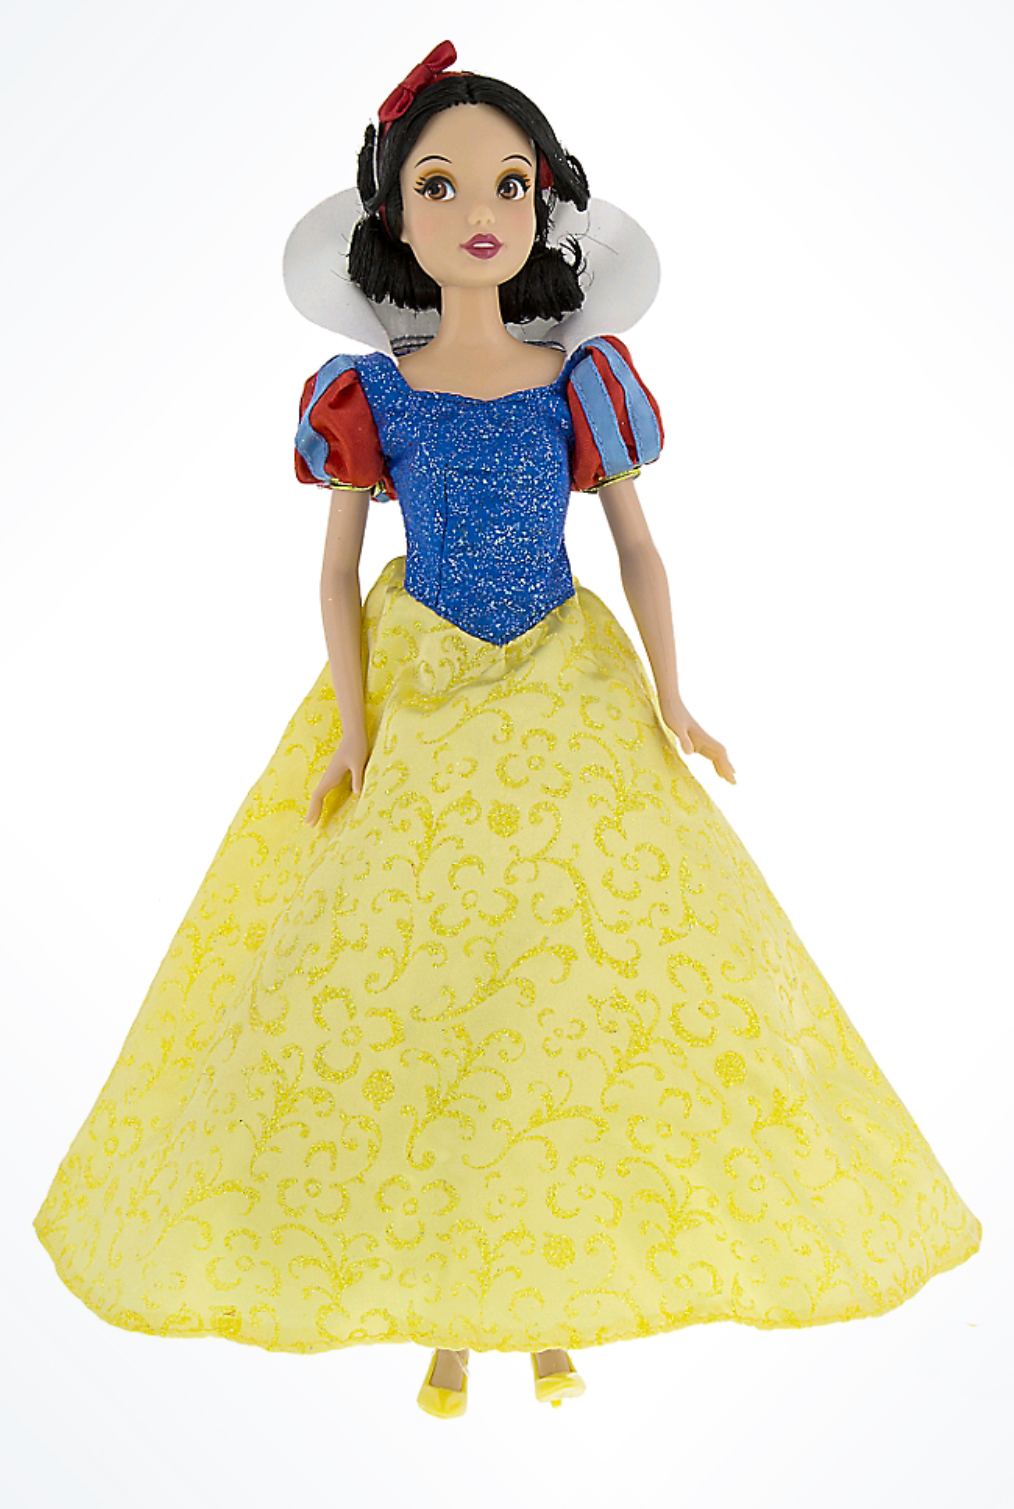 """MADAME ALEXANDER DOLL STORYBOOK SNOW WHITE APPROX 5/"""" NEW"""